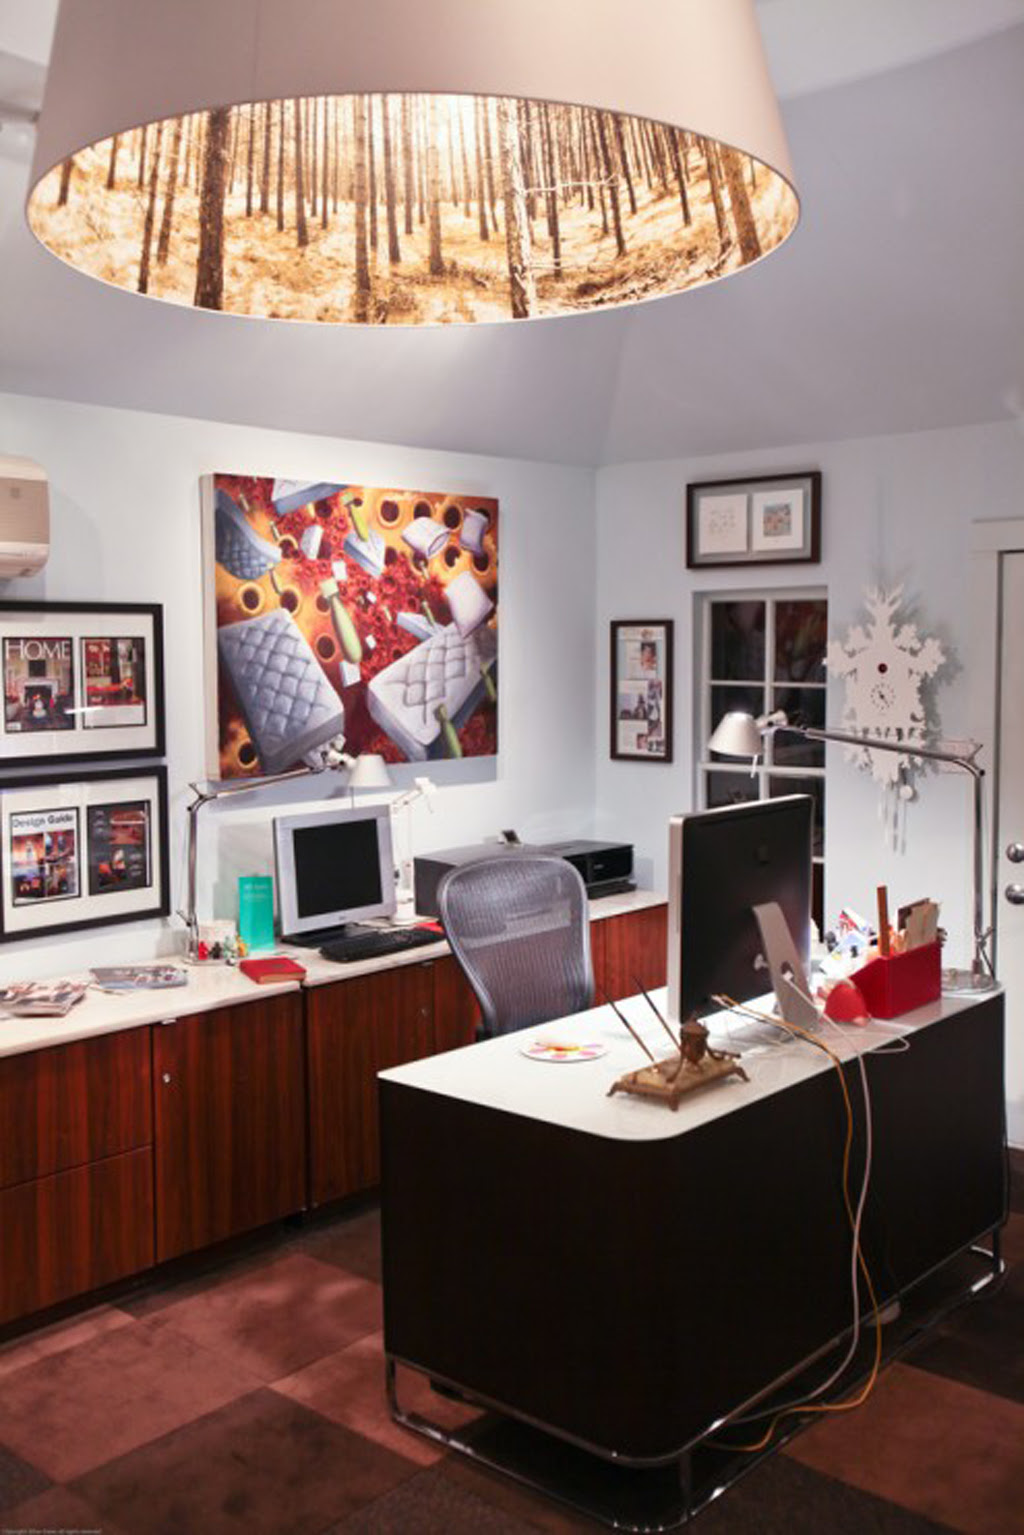 25 Creative Home Office Design Ideas - 15 Best Home Decorating Samples For Ideas MostBeautifulThings